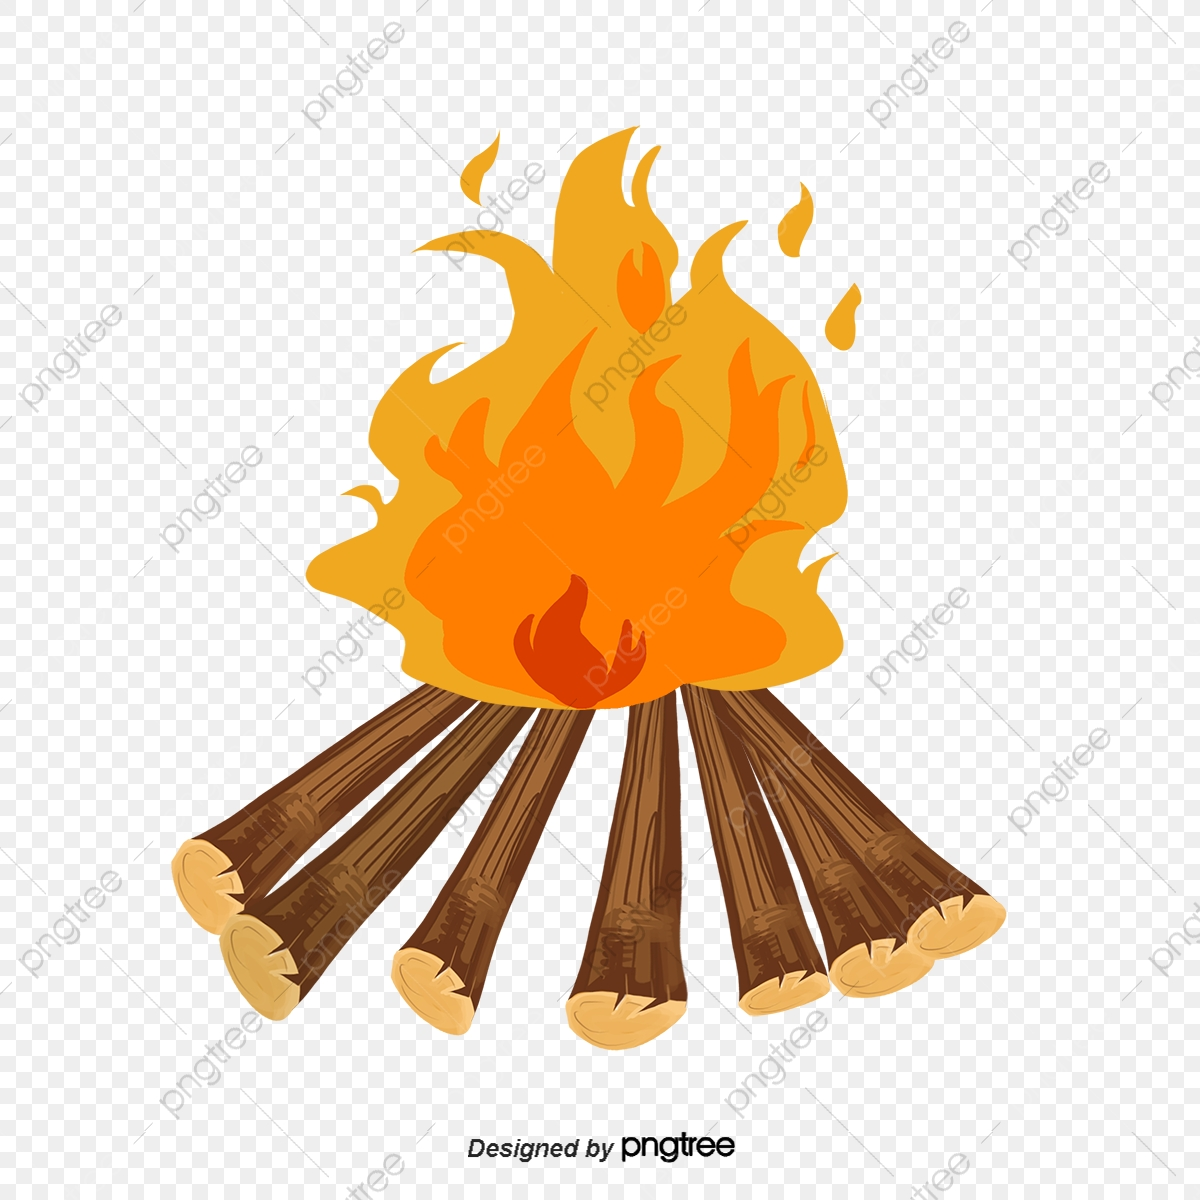 Cartoon Flame Fire Fire Clipart Cartoon Vector Flame Vector Png Transparent Clipart Image And Psd File For Free Download Survival tips guides lost in jungle. https pngtree com freepng cartoon flame fire 3377893 html